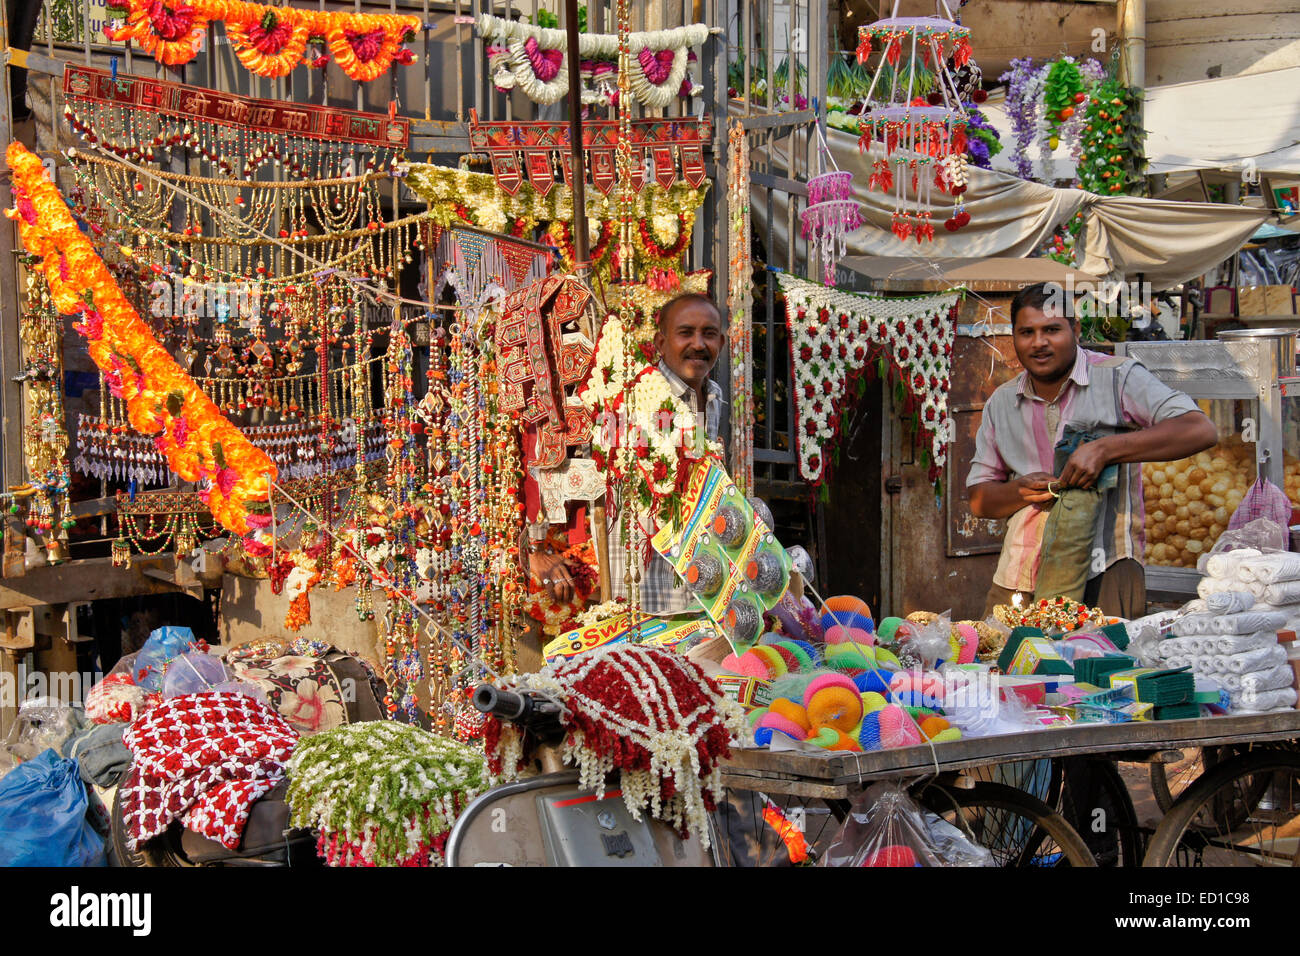 Street vendors in Old Ahmedabad, Gujarat, India - Stock Image